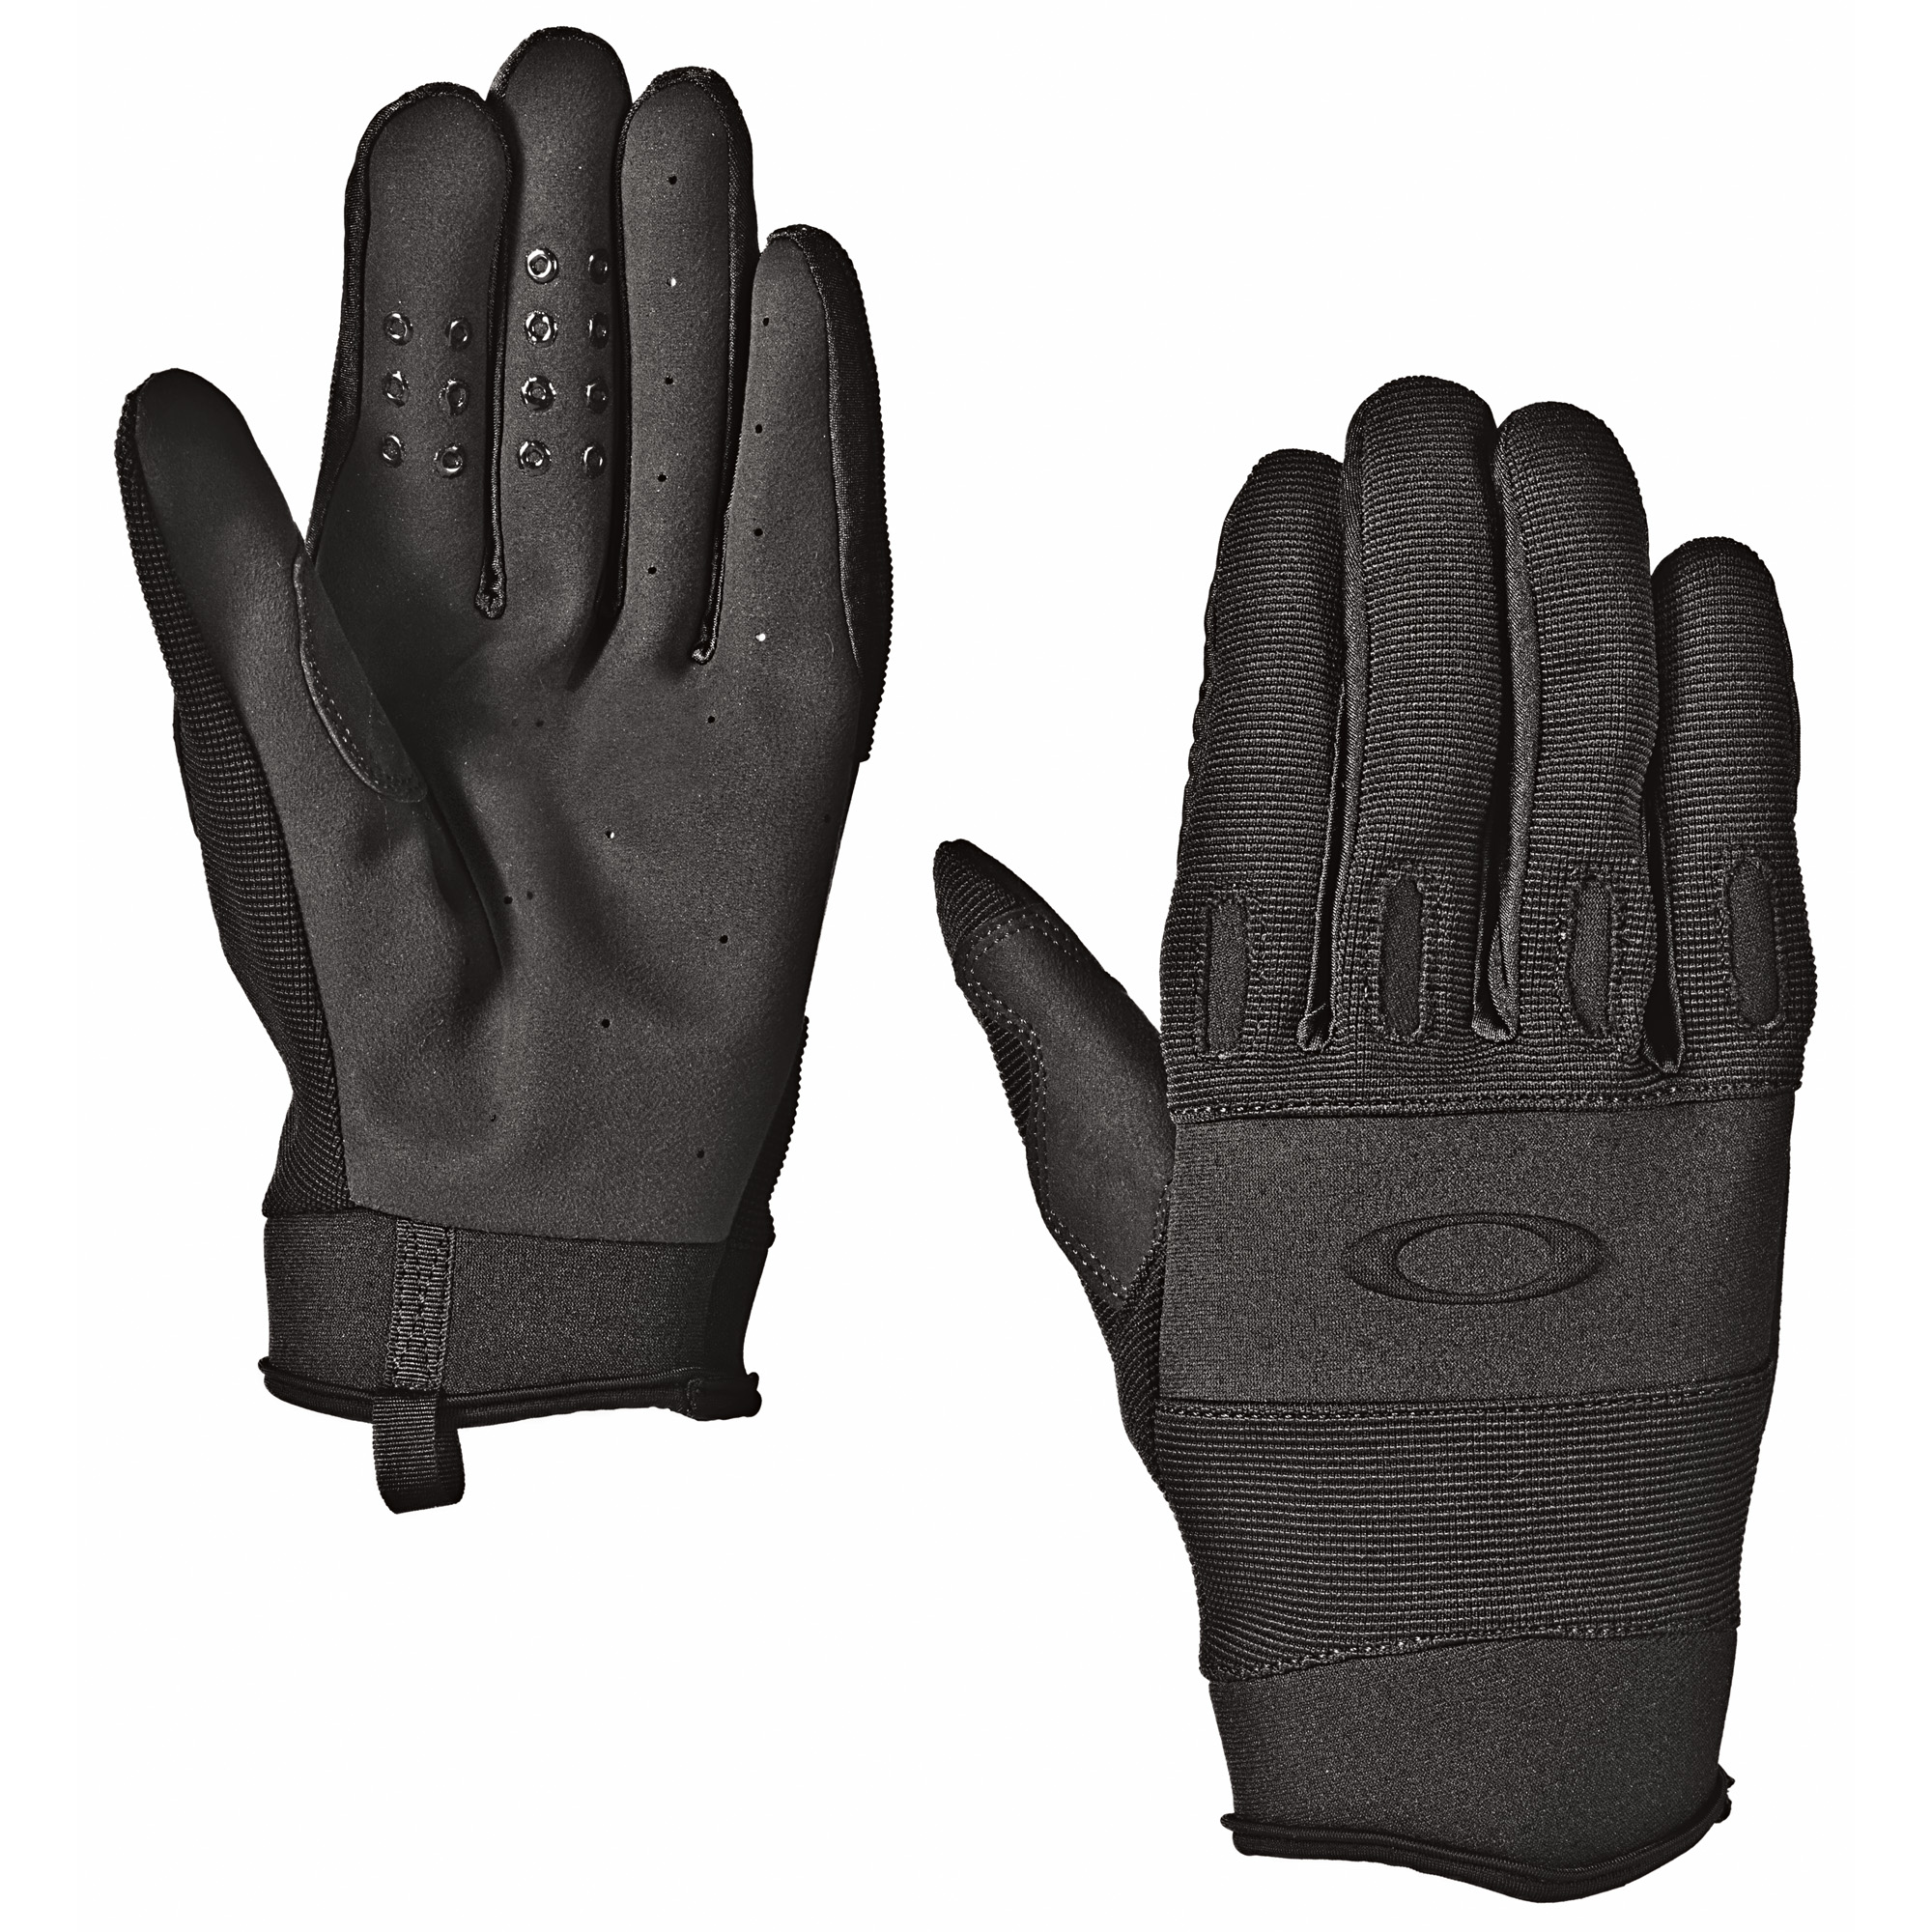 "The Oakley SI Lightweight glove is mission-specific gear"" designed for operations that require low weight with proven performance. Breathability is essential for warmer climates"" so this glove combines span nylon with Airprene for maximum comfort. AX suede maintains dexterity at the palms"" and the reinforced trigger finger is removable for easy adaptation. A high-friction pattern on the fingers provides a sure grip."